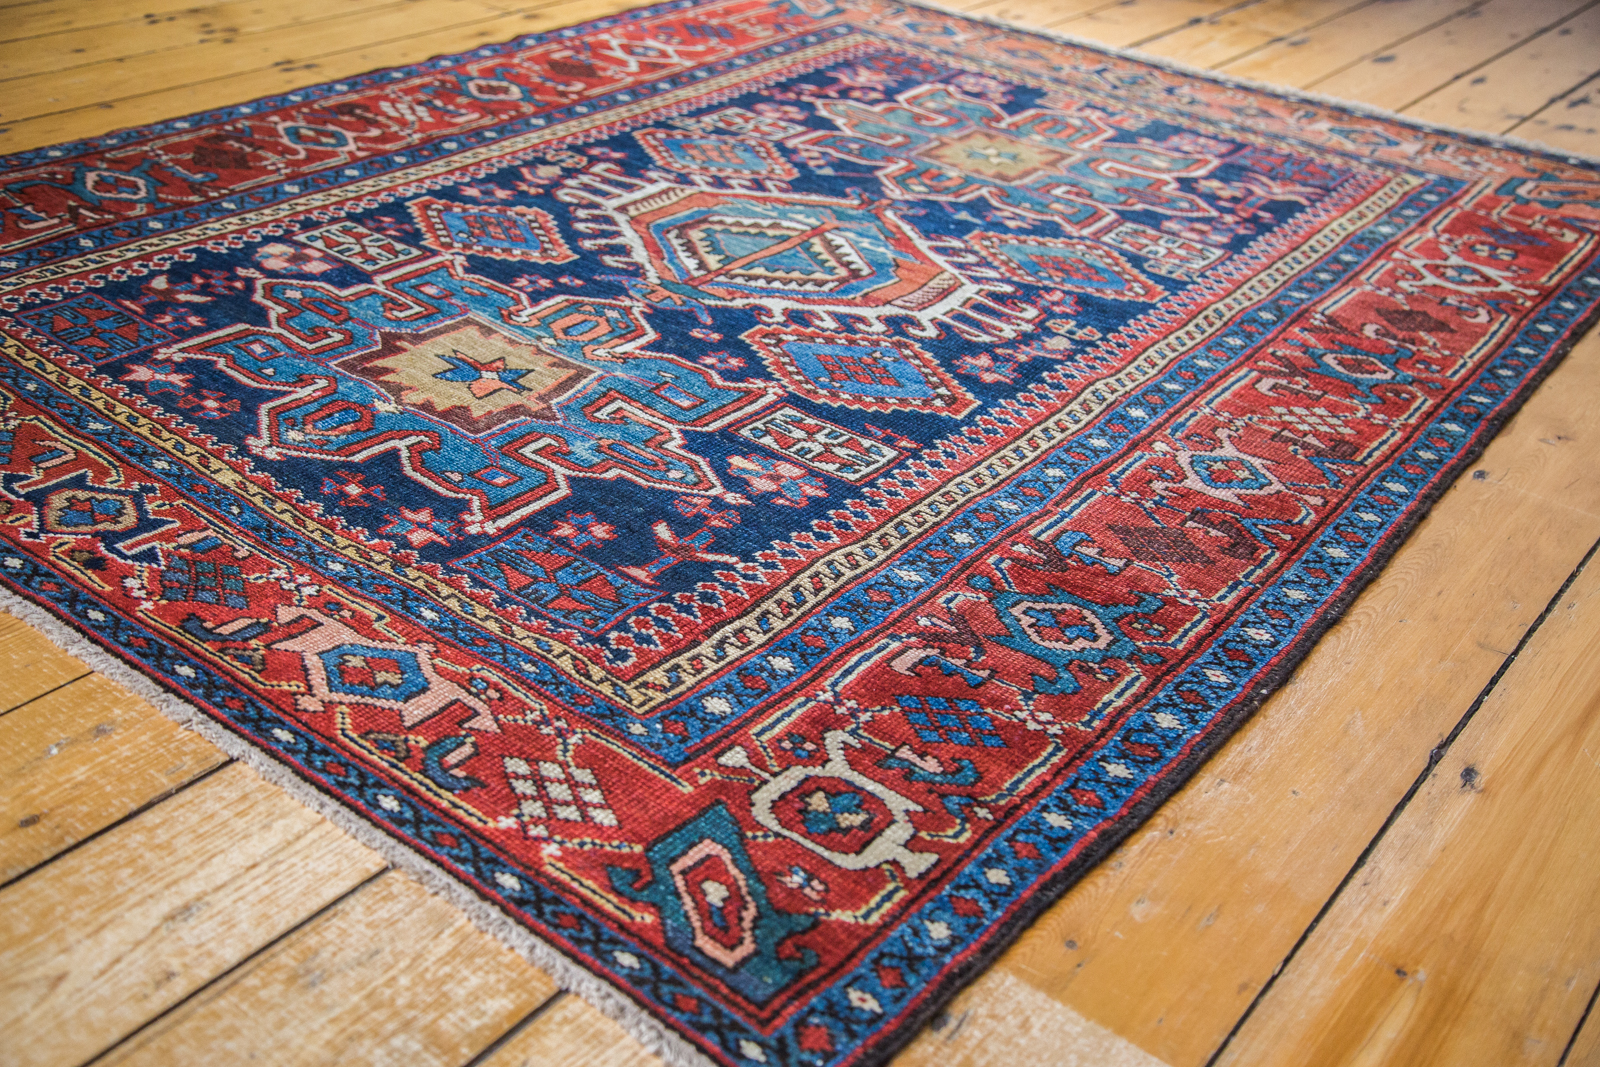 Red Oriental Rug Red And Blue Oriental Rug 1500 43 Trend Home Design 1500